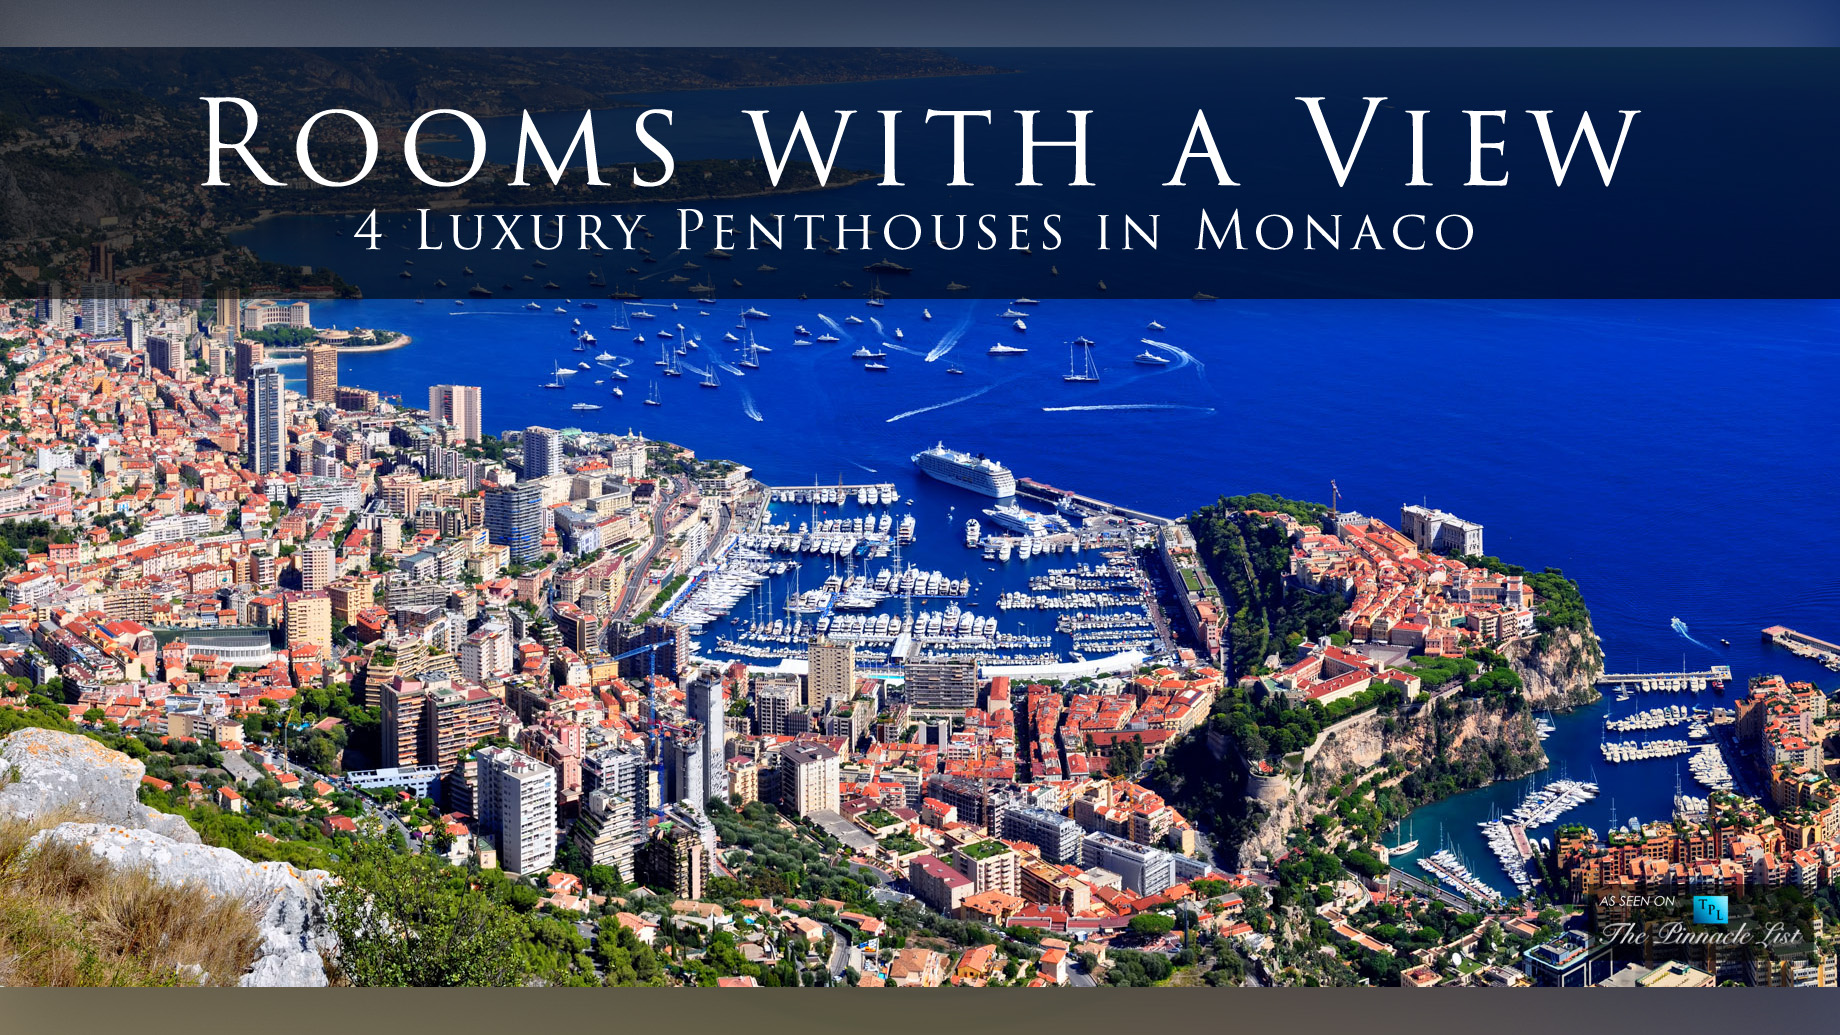 Rooms with a View - 4 Luxury Penthouses in Monaco